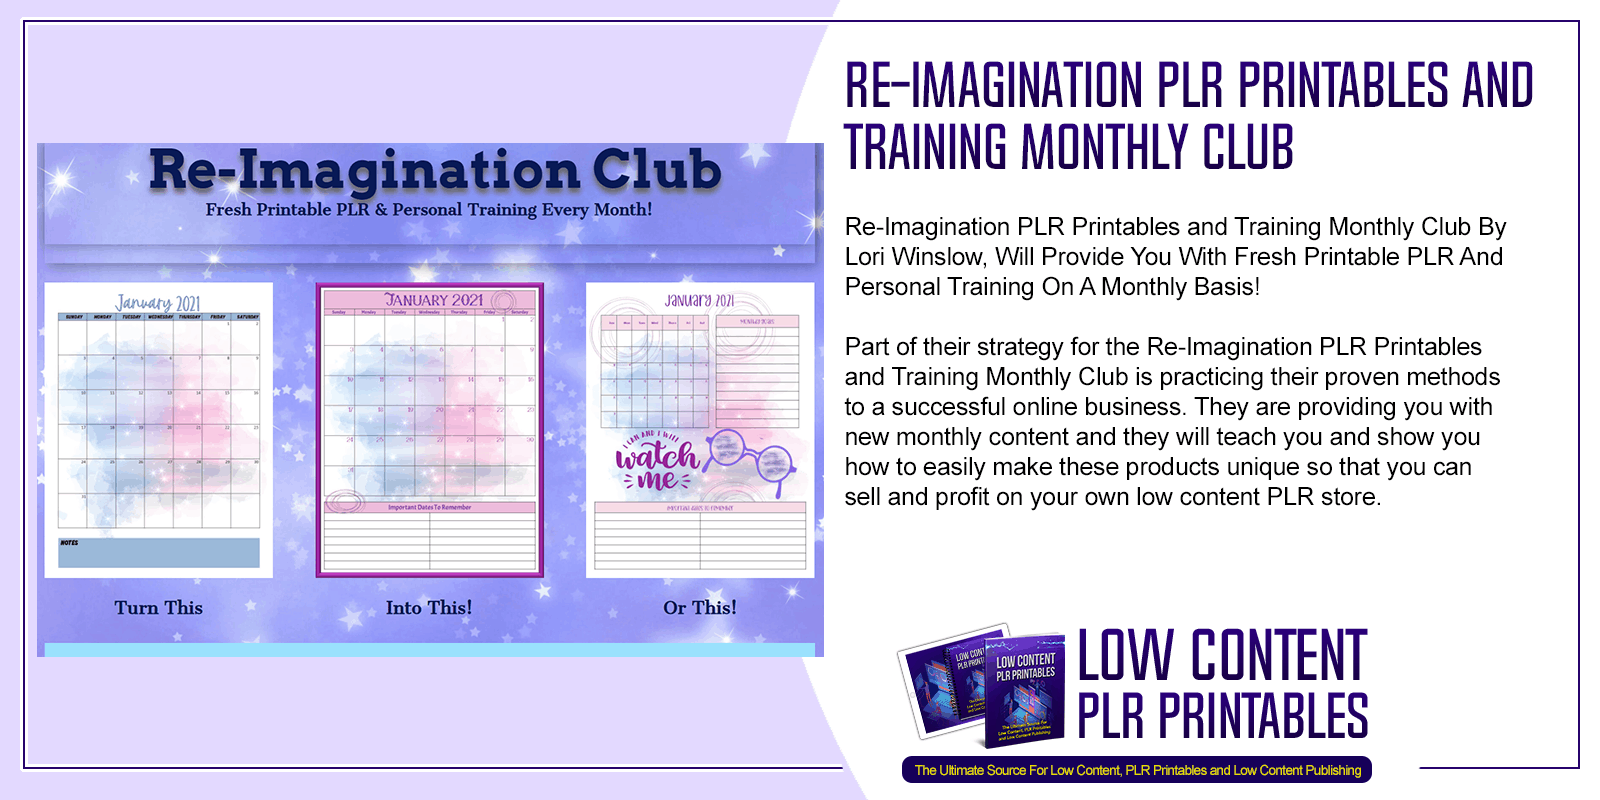 Re Imagination PLR Printables and Training Monthly Club